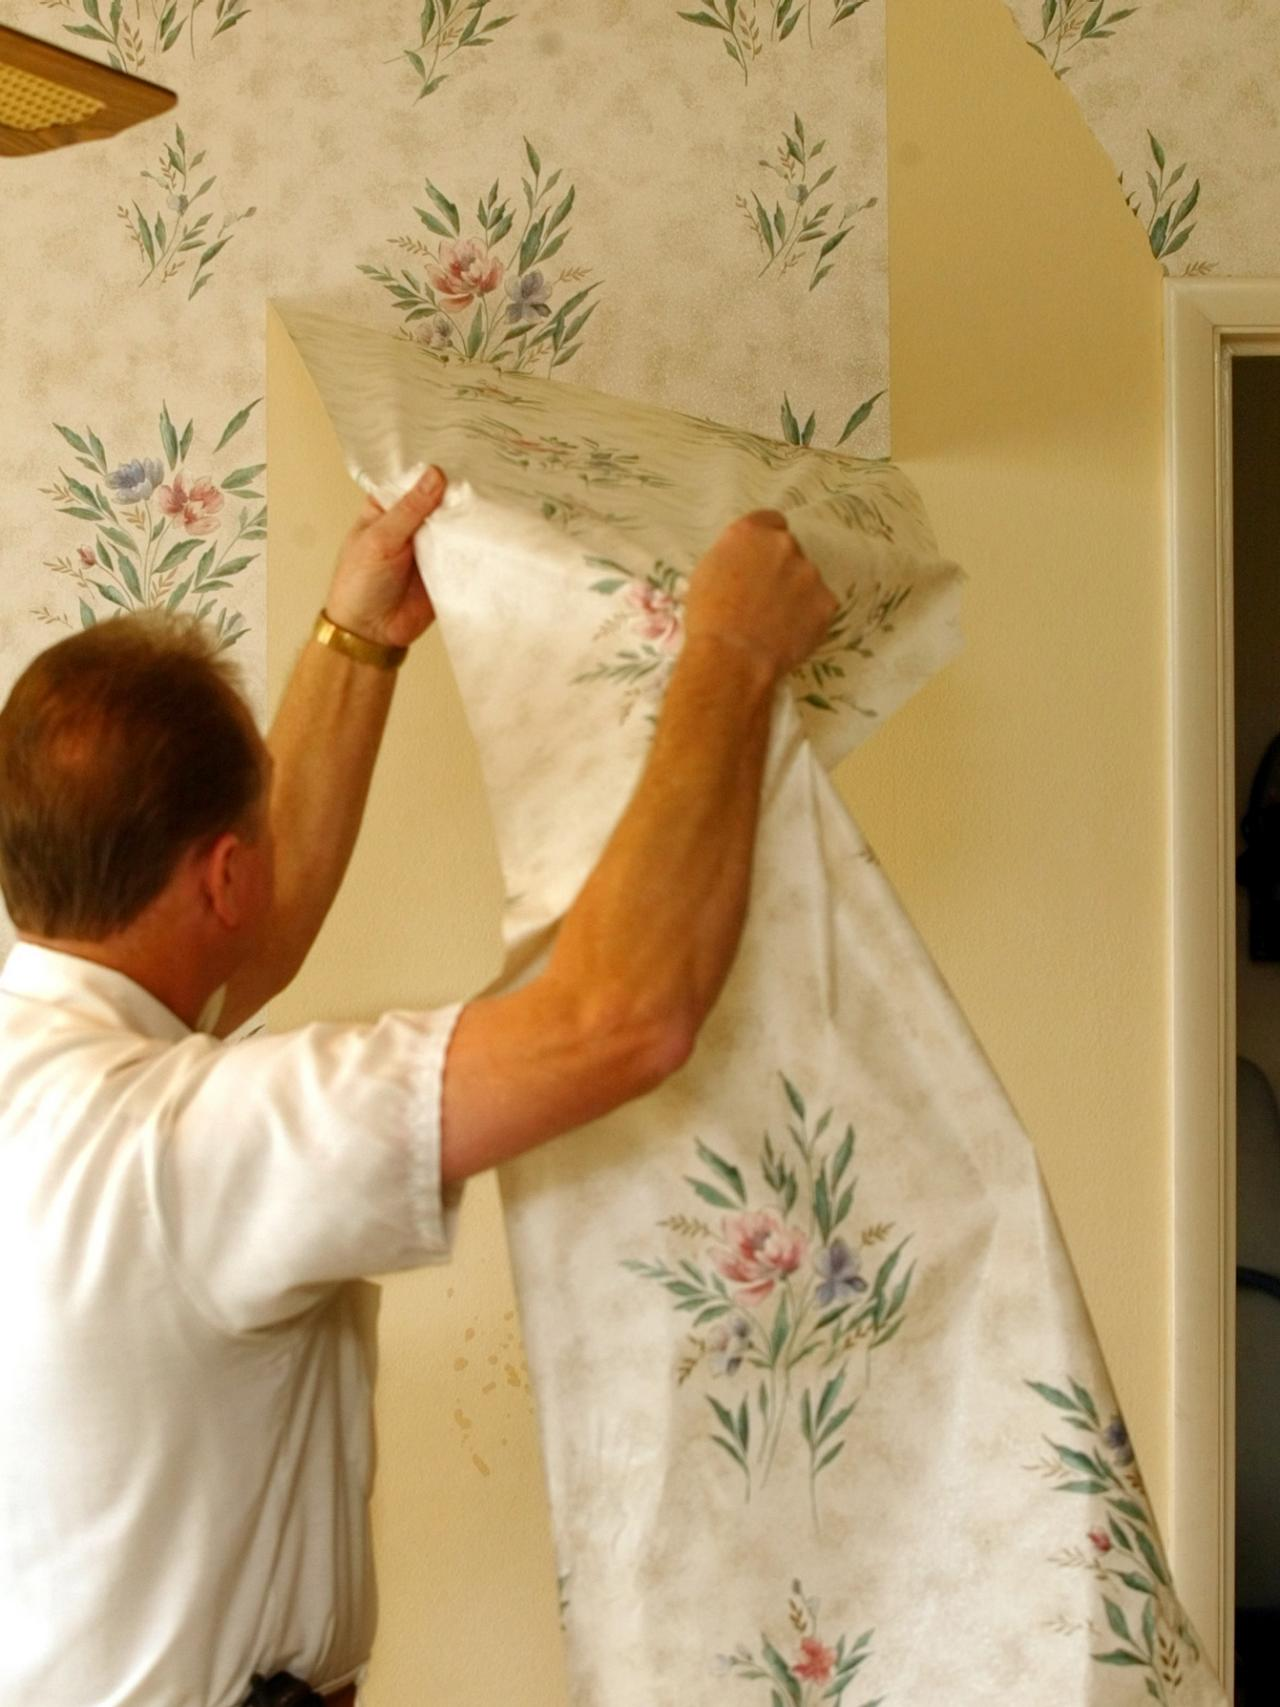 How To Scrape Wallpaper Off Walls